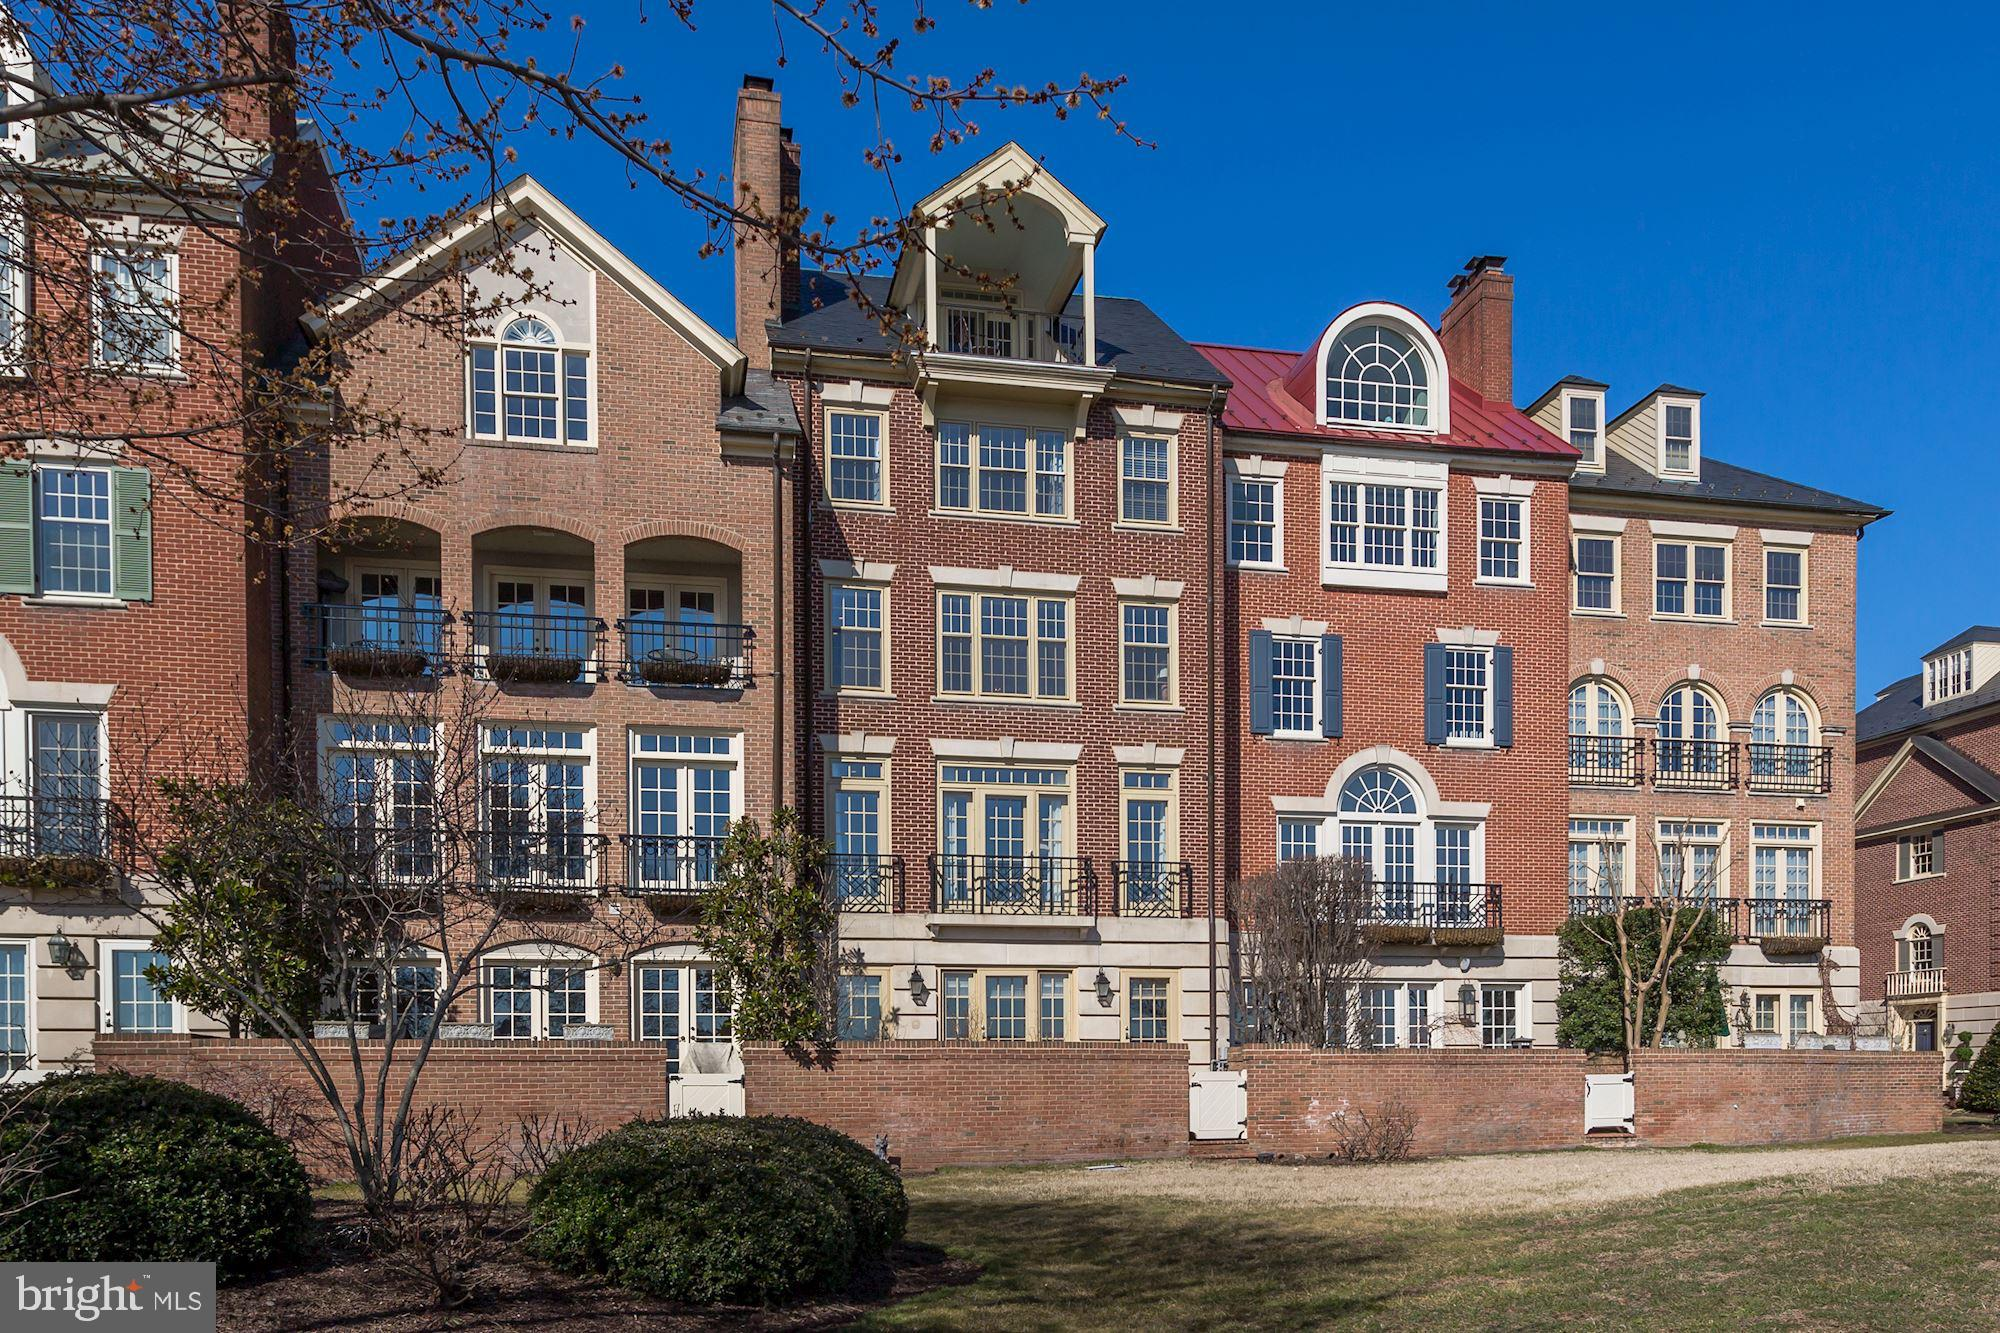 This spectacular waterfront townhouse is perfectly located in historic Old Town, Alexandria, named one of the top five best small towns in America.  With expansive Potomac River views from all five levels, this home is an oasis of calm and serenity, just three walkable blocks south of vibrant King Street. Enjoy watching sunrise over the river, boating activity during the day, and the festive lights of National Harbor in the evening.  Situated in the meticulously manicured private neighborhood of Harborside, this home has been completely updated, remodeled, and renovated, with close attention to quality finishes. Featuring an elevator that services all five floors, it is not only elegant and classic, but comfortable and practical.  Completing the appeal of waterfront living, a 40~boat slip in the adjoining marina is part of this offering.On the first level, the two-car garage is thoughtfully heated, while the sophisticated marble foyer sets the tone for the rest of the house. The entry level also features a welcoming Family Room with a gas fireplace.  French doors open to the walled brick patio from which the wooden gate provides direct access to the waterfront pathway.  The patio, bordered by gardens just readied for spring, is a perfect spot for al fresco dining and entertaining. A Powder Room and coat closet are also conveniently located on the ground level.  The staircase with landing leads to the second floor, where morning sunlight streams through the Living Room~s four glass-paned doors, reflecting off the stunning water views. This spacious room has crown moulding, wood floors, and a gas fireplace with marble surround.  Conducive to entertaining, the Living Room opens to the Dining area and gourmet chef's Kitchen,  an inviting space for both cooking and conversation.  The custom Kitchen features a large island, Sub-Zero French door refrigerator/freezer and wine storage unit, Wolf gas cooktop, electric convection oven and microwave, and Miele dishwasher.  The 